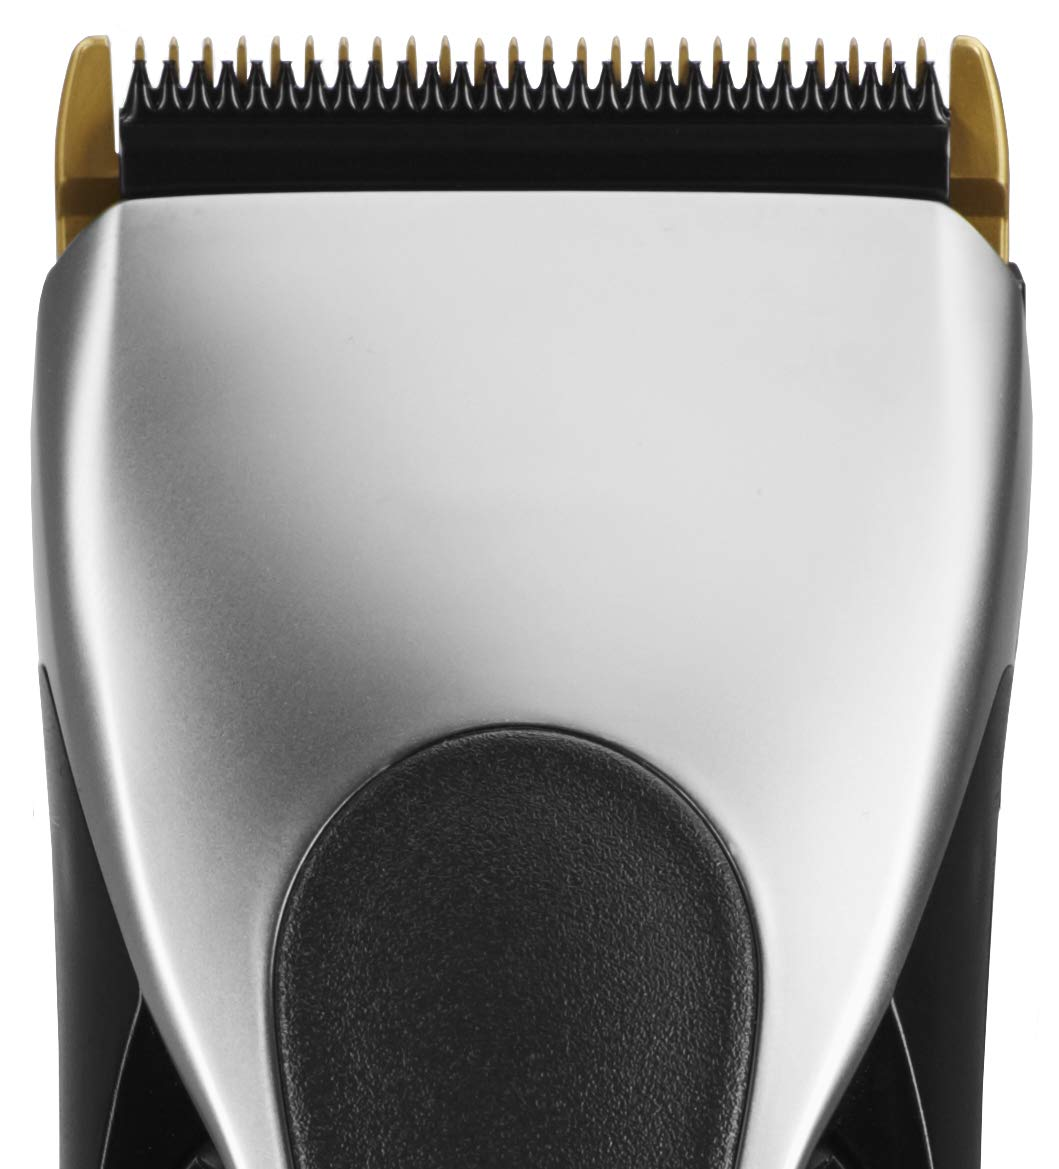 Panasonic ER-DGP72 Professional Hair Trimmer for Battery-Powered and Mains  Operated Hair Trimmer with Improved Cutting Blade for Longer Life,